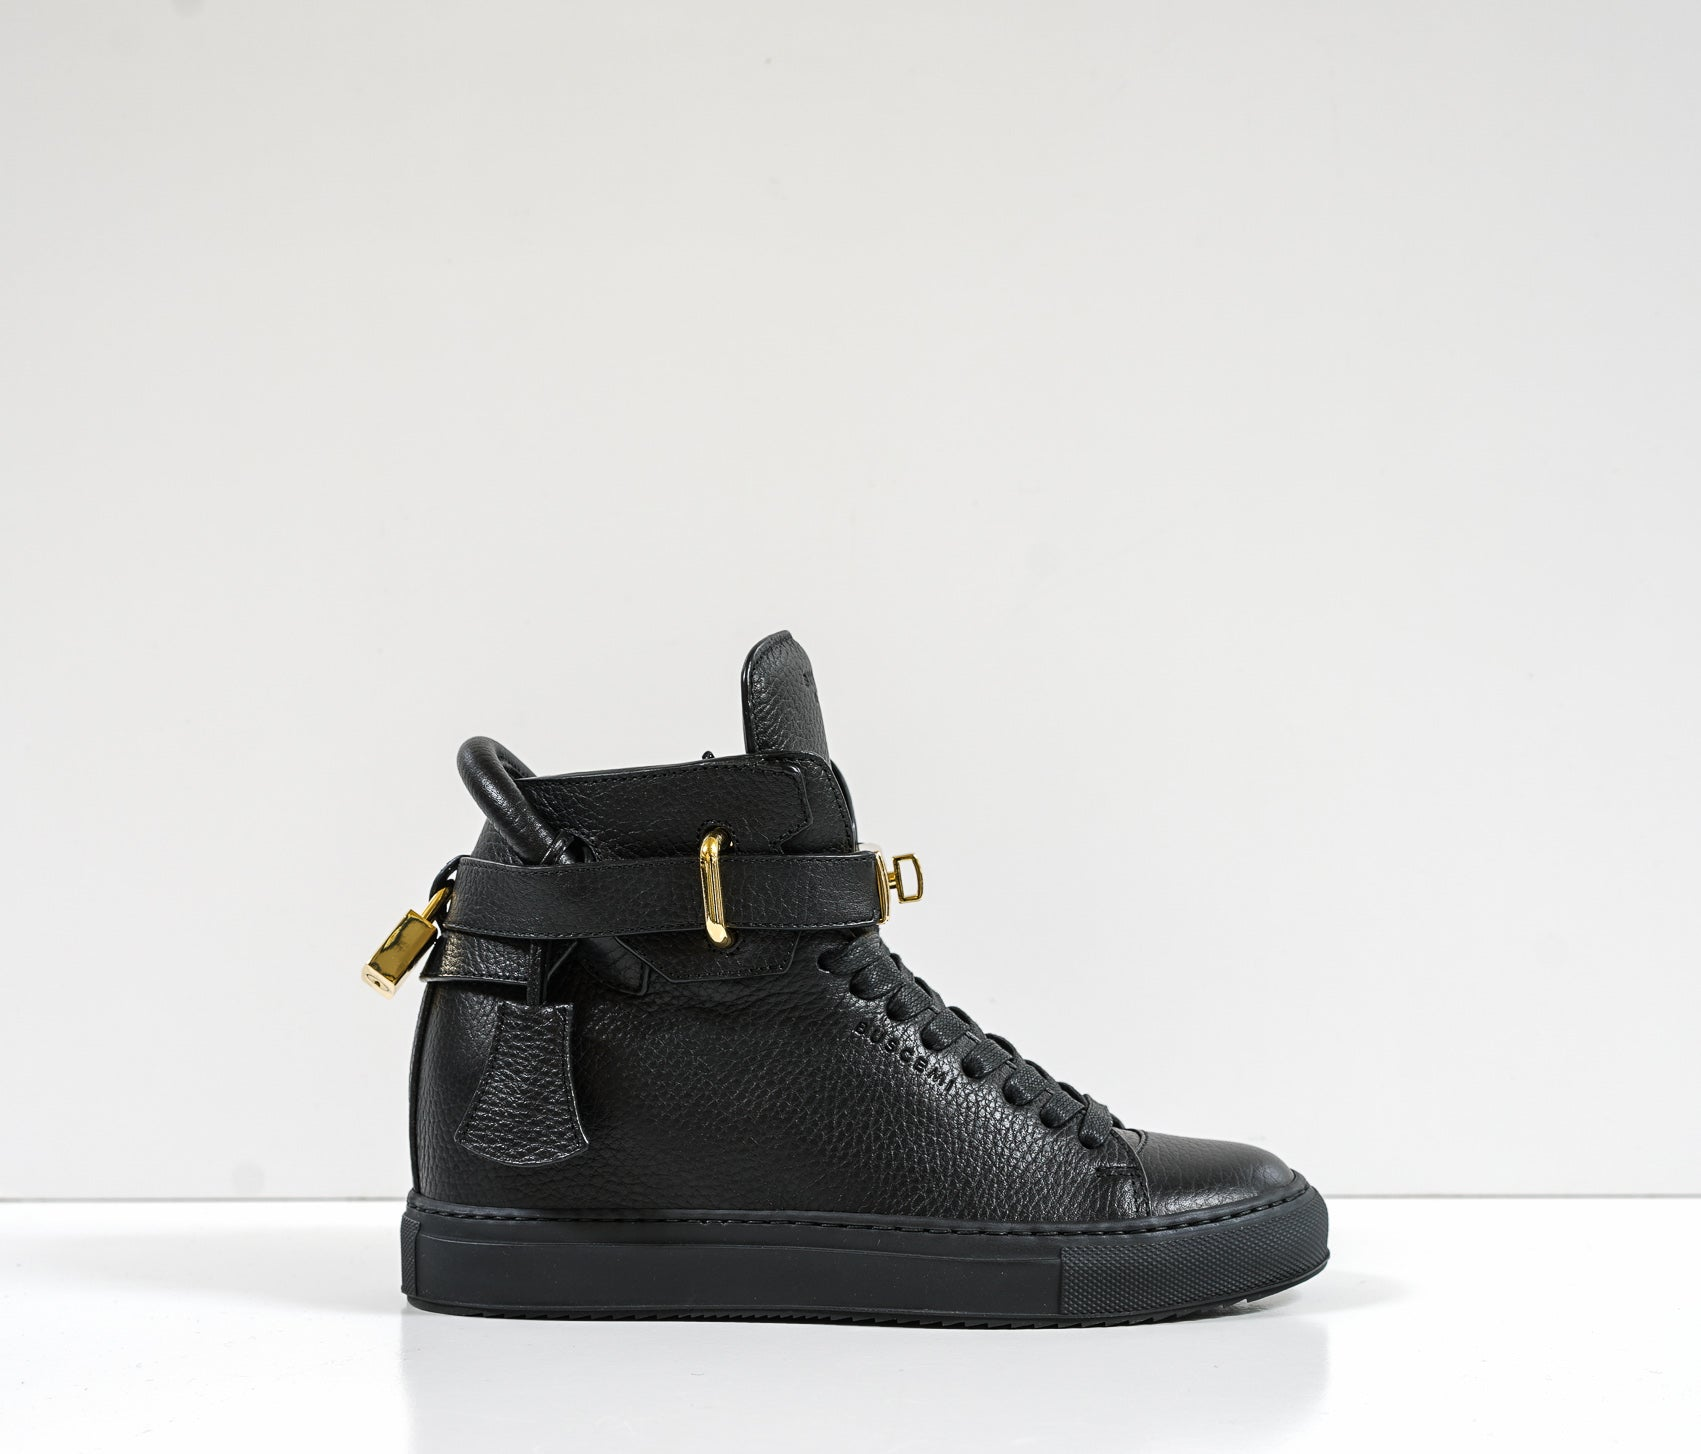 Buscemi Women's Black Leather 100 MM Hi-Top Sneaker 1007